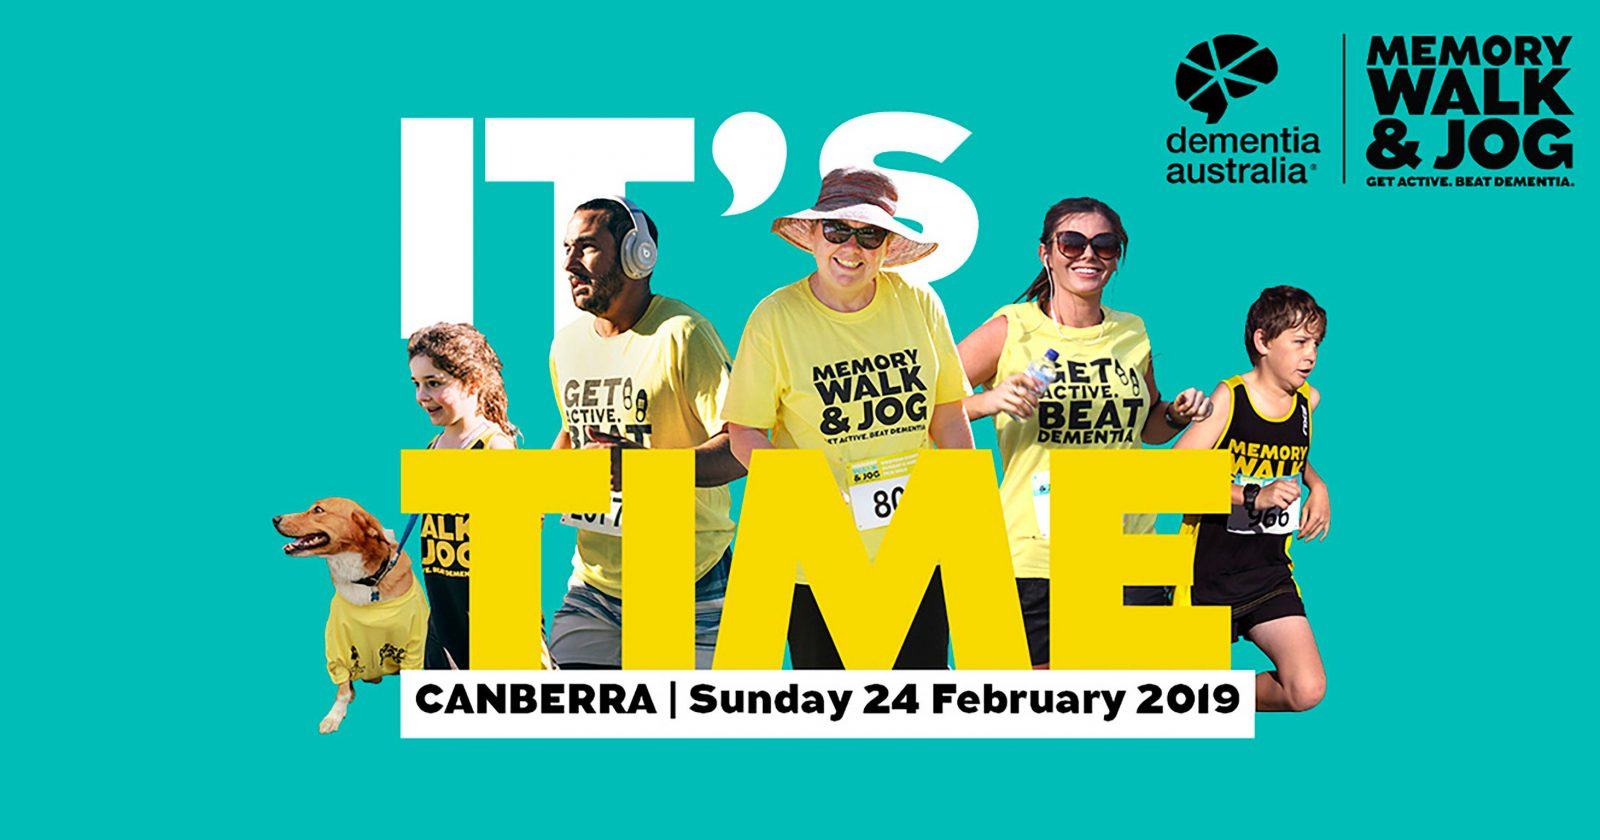 It's Time to Get Active and Beat Dementia. Register for Canberra Memory Walk & Jog today